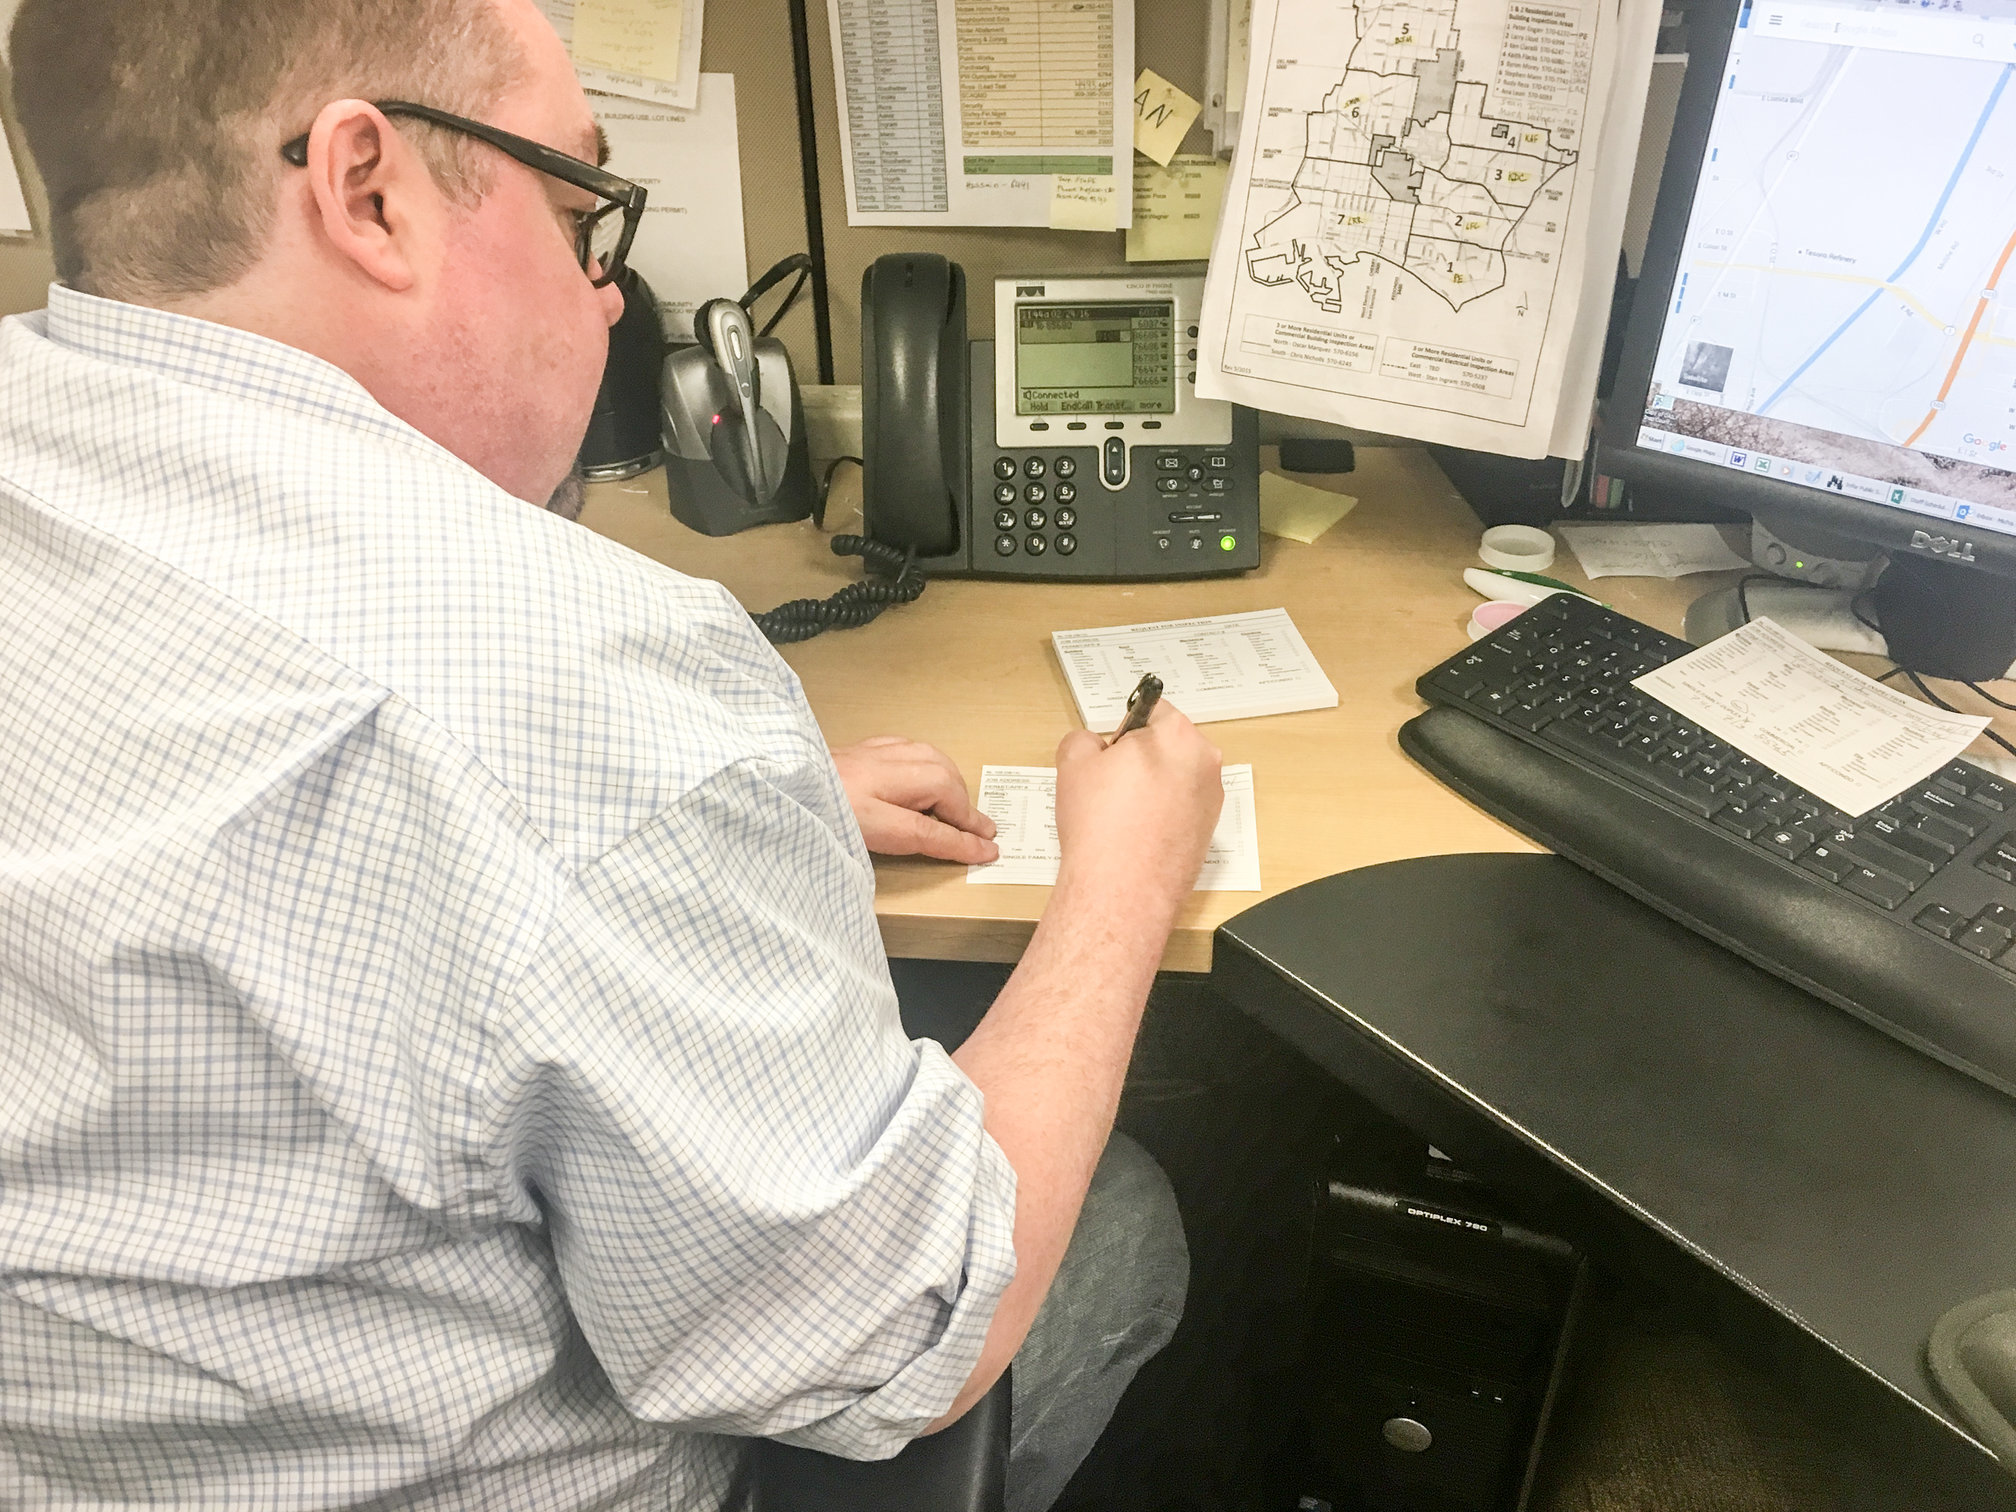 <p>Permit Technician Mike M. transcribing inspection requests from voicemail.</p>